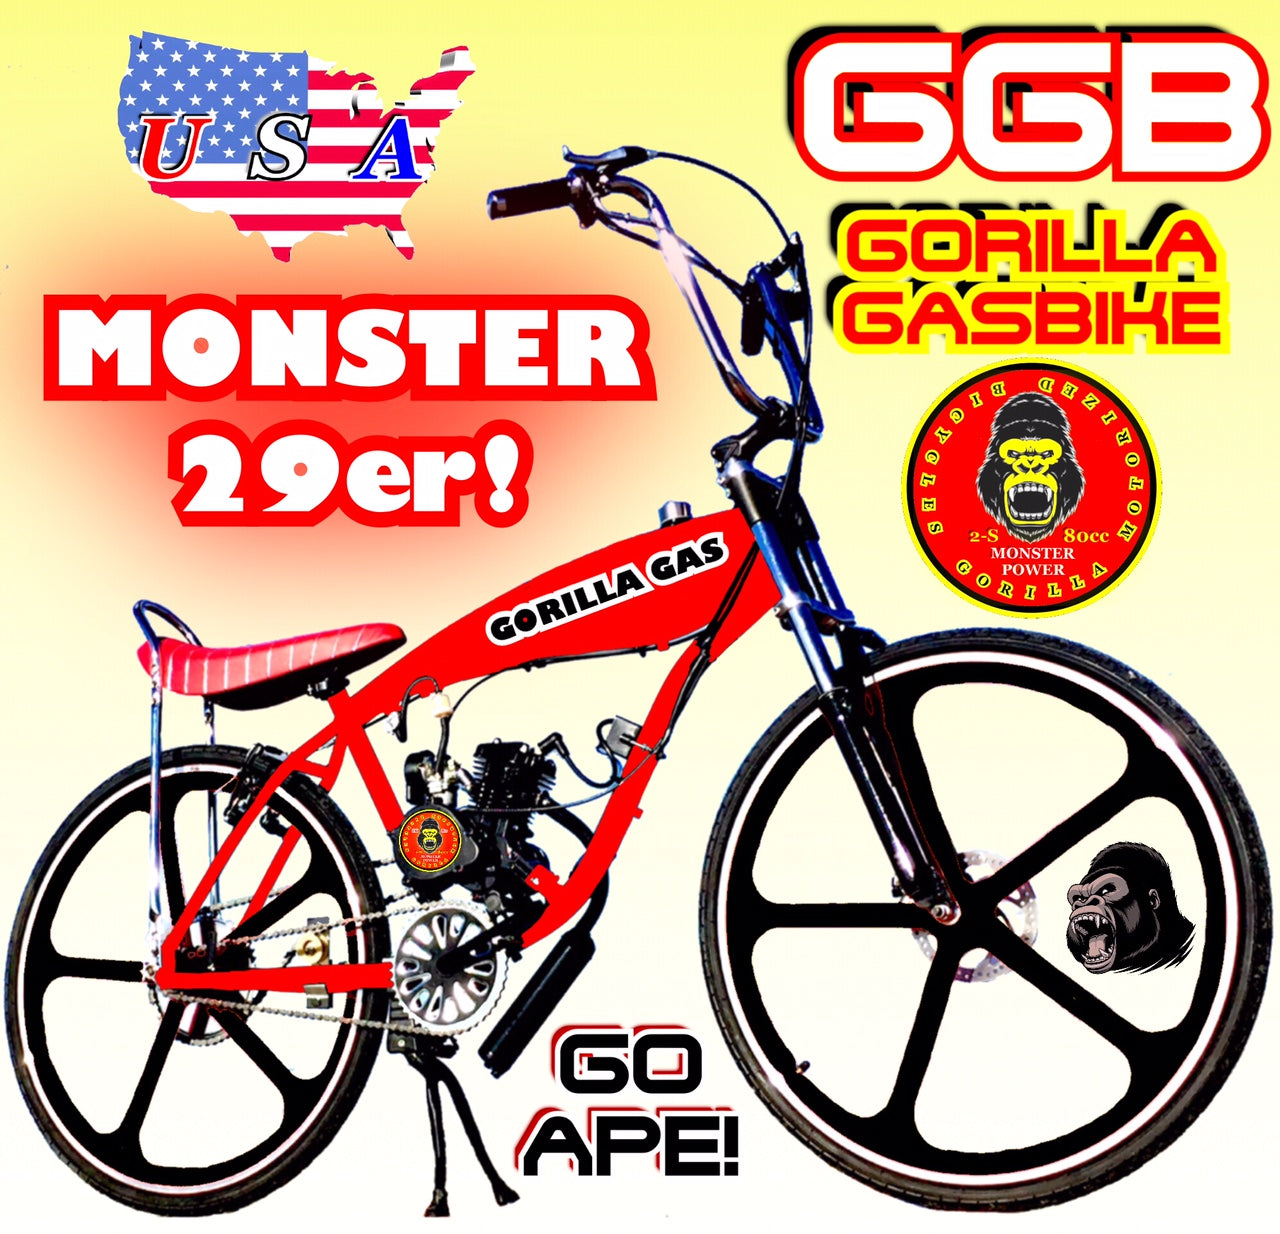 Monster 29er tm complete do it yourself 2 stroke 66cc80cc motorized monster 29er tm complete do it yourself 2 stroke 66cc80cc motorized solutioingenieria Choice Image